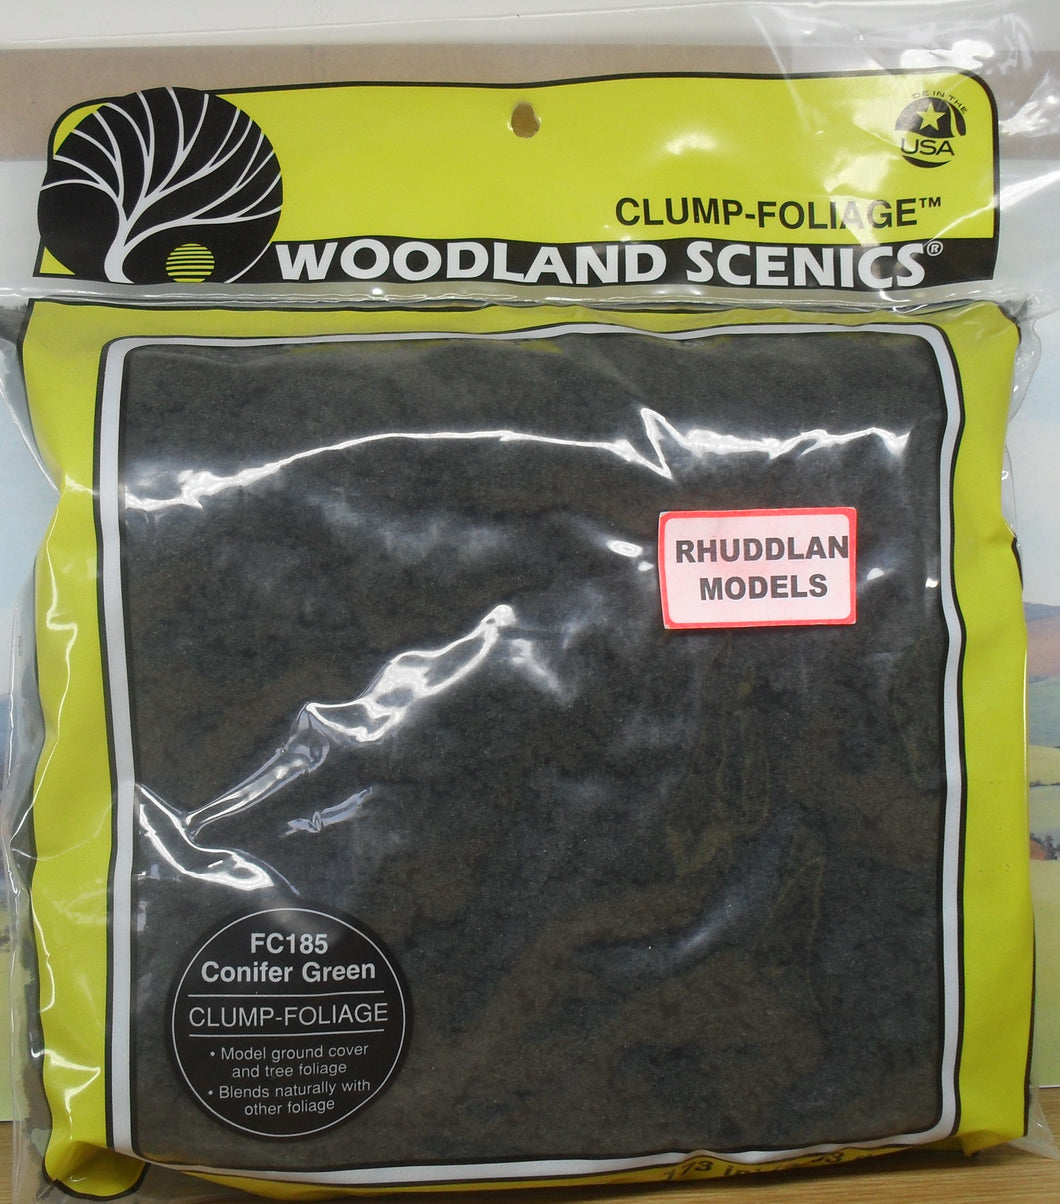 WOODLAND SCENICS CLUMP FOLIAGE FC185 CONIFER GREEN - (PRICE INCLUDES DELIVERY)